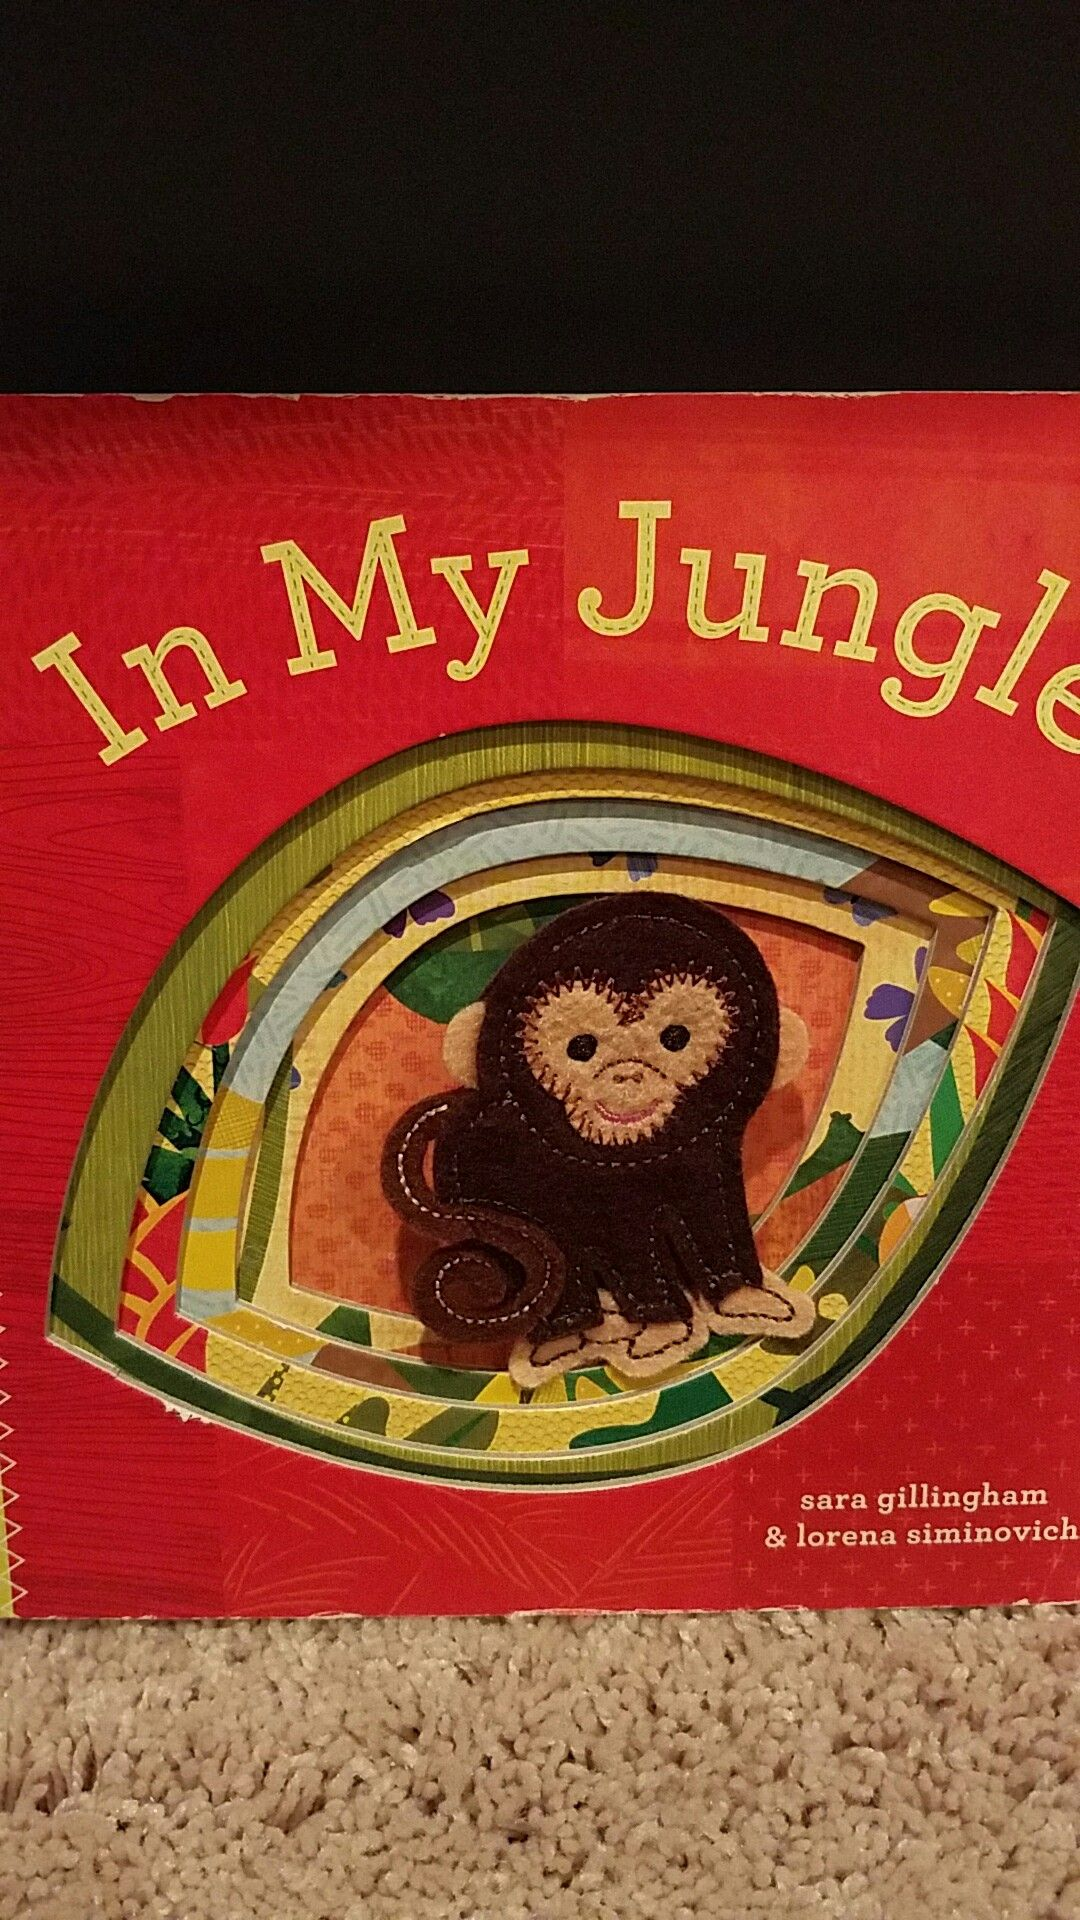 In My Jungle By Sara Gillingham And Lorena Siminovich